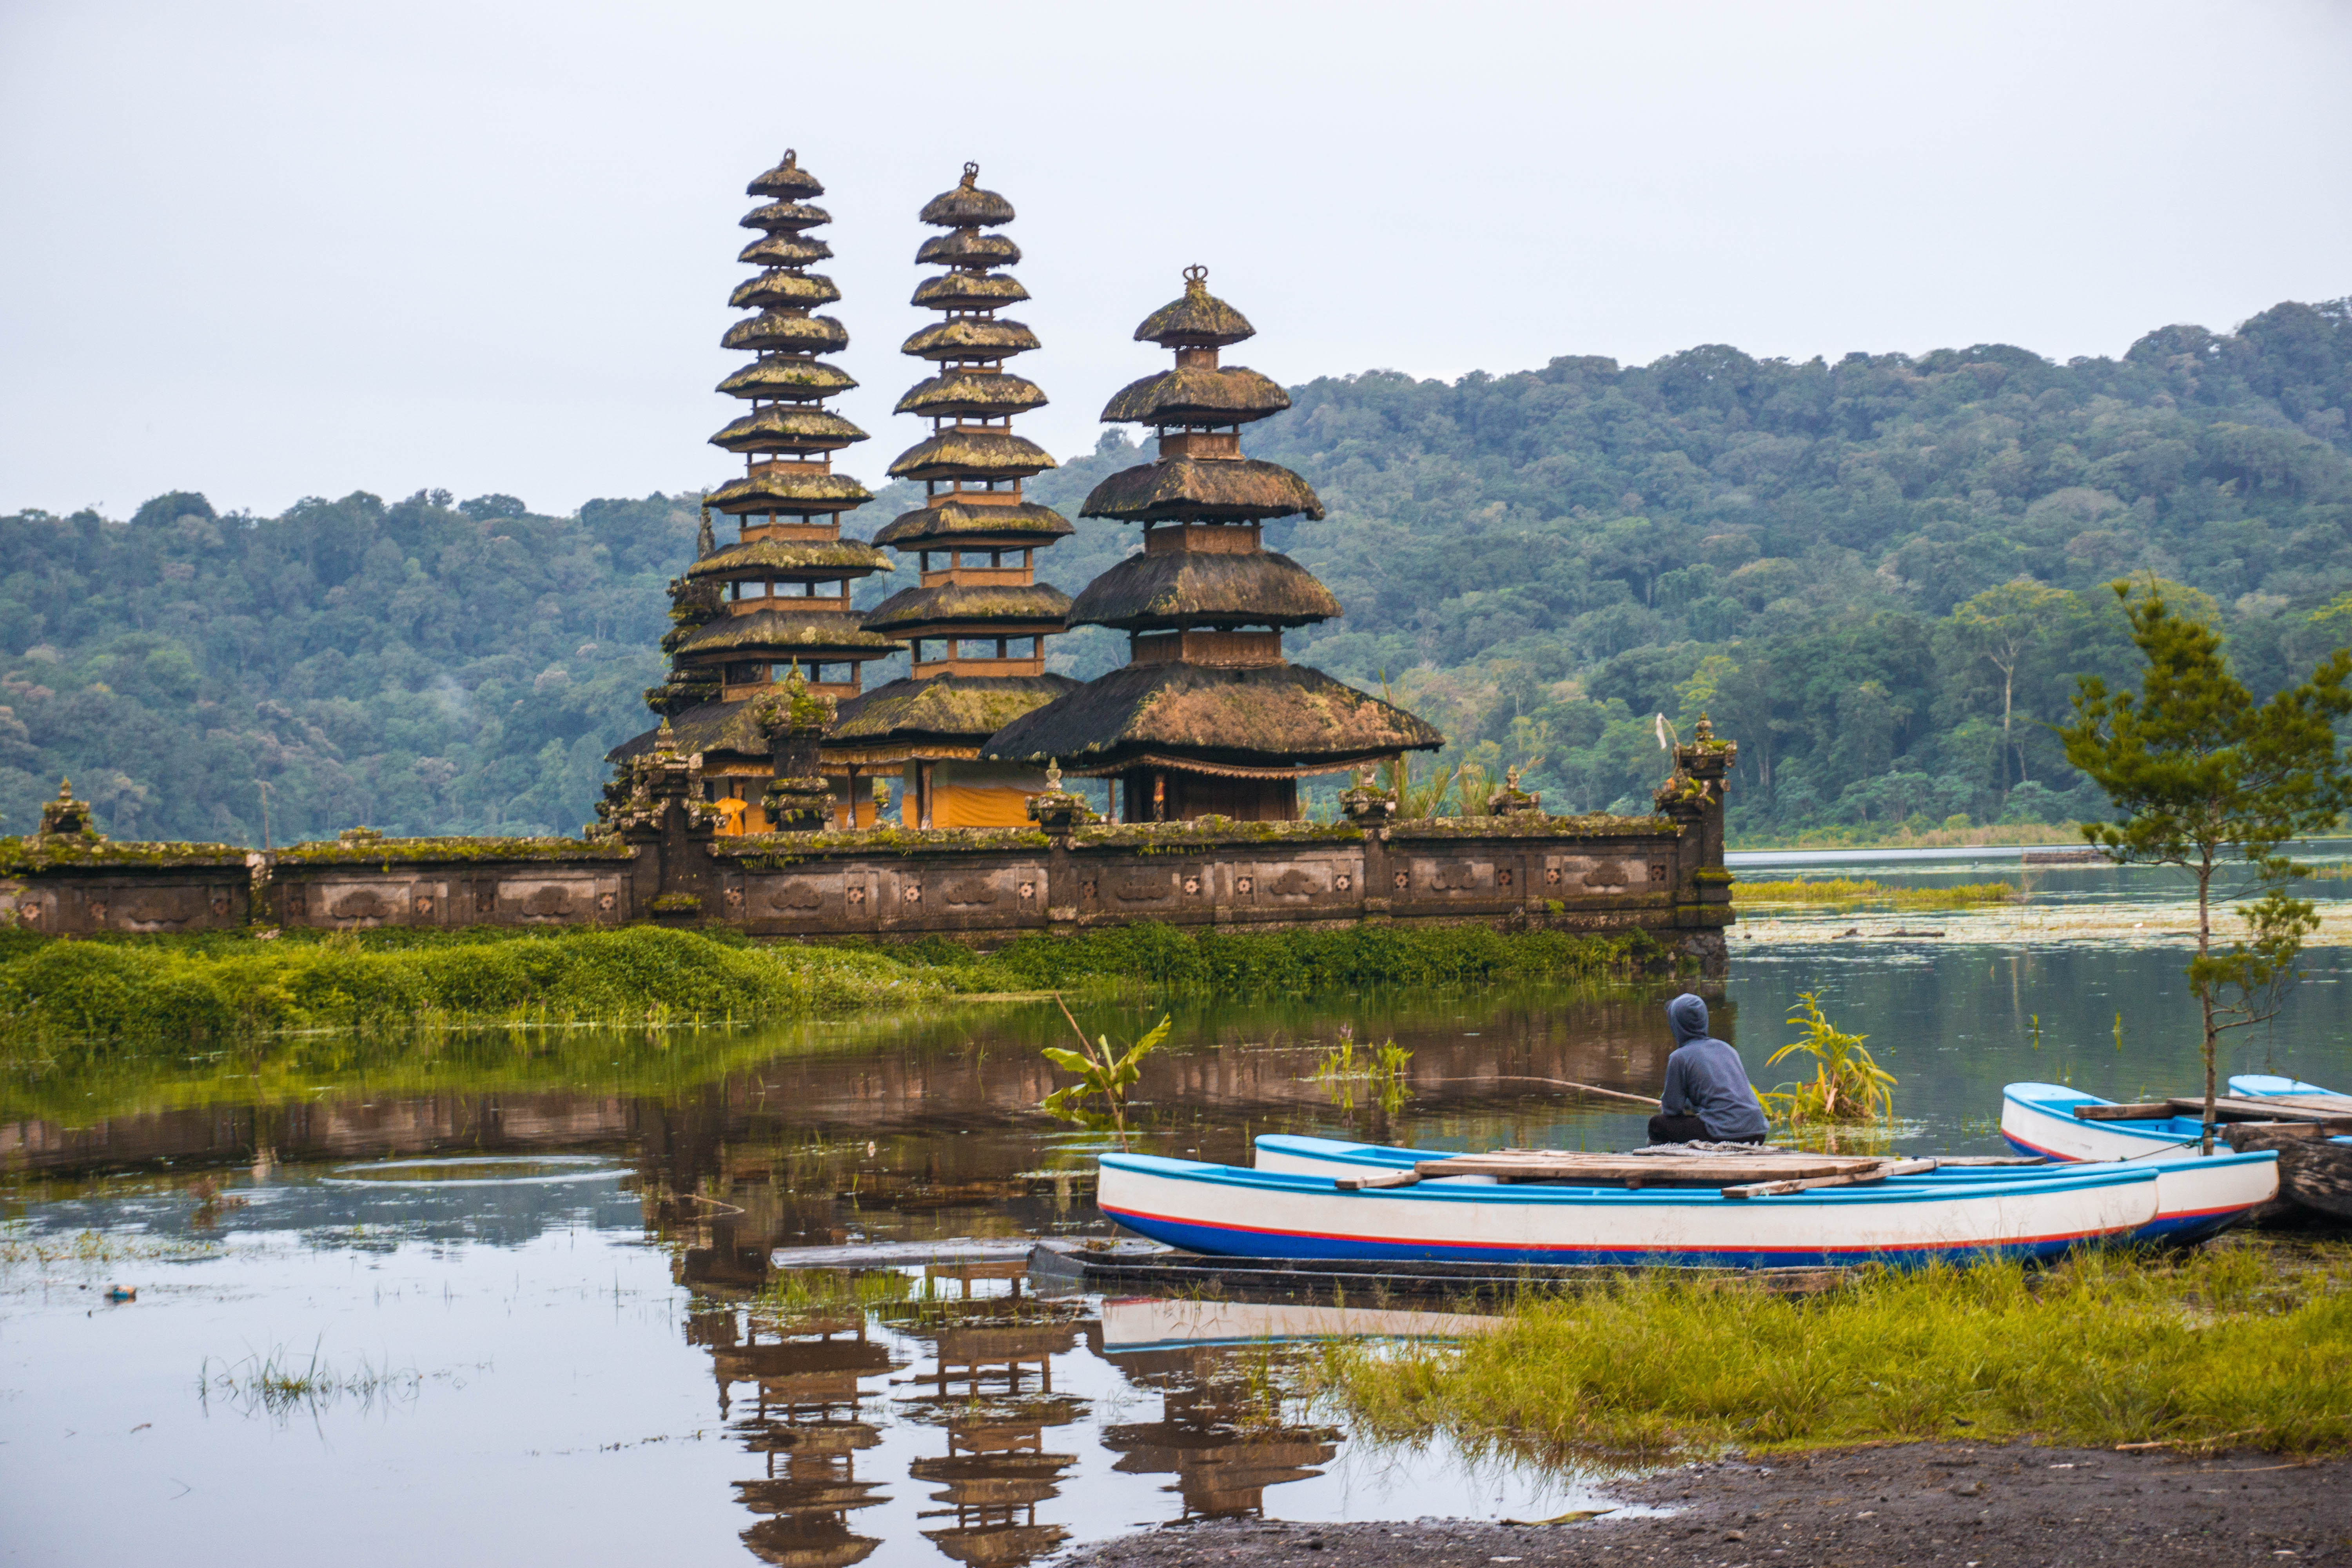 Ultimate Guide to the Bali Twin Lakes